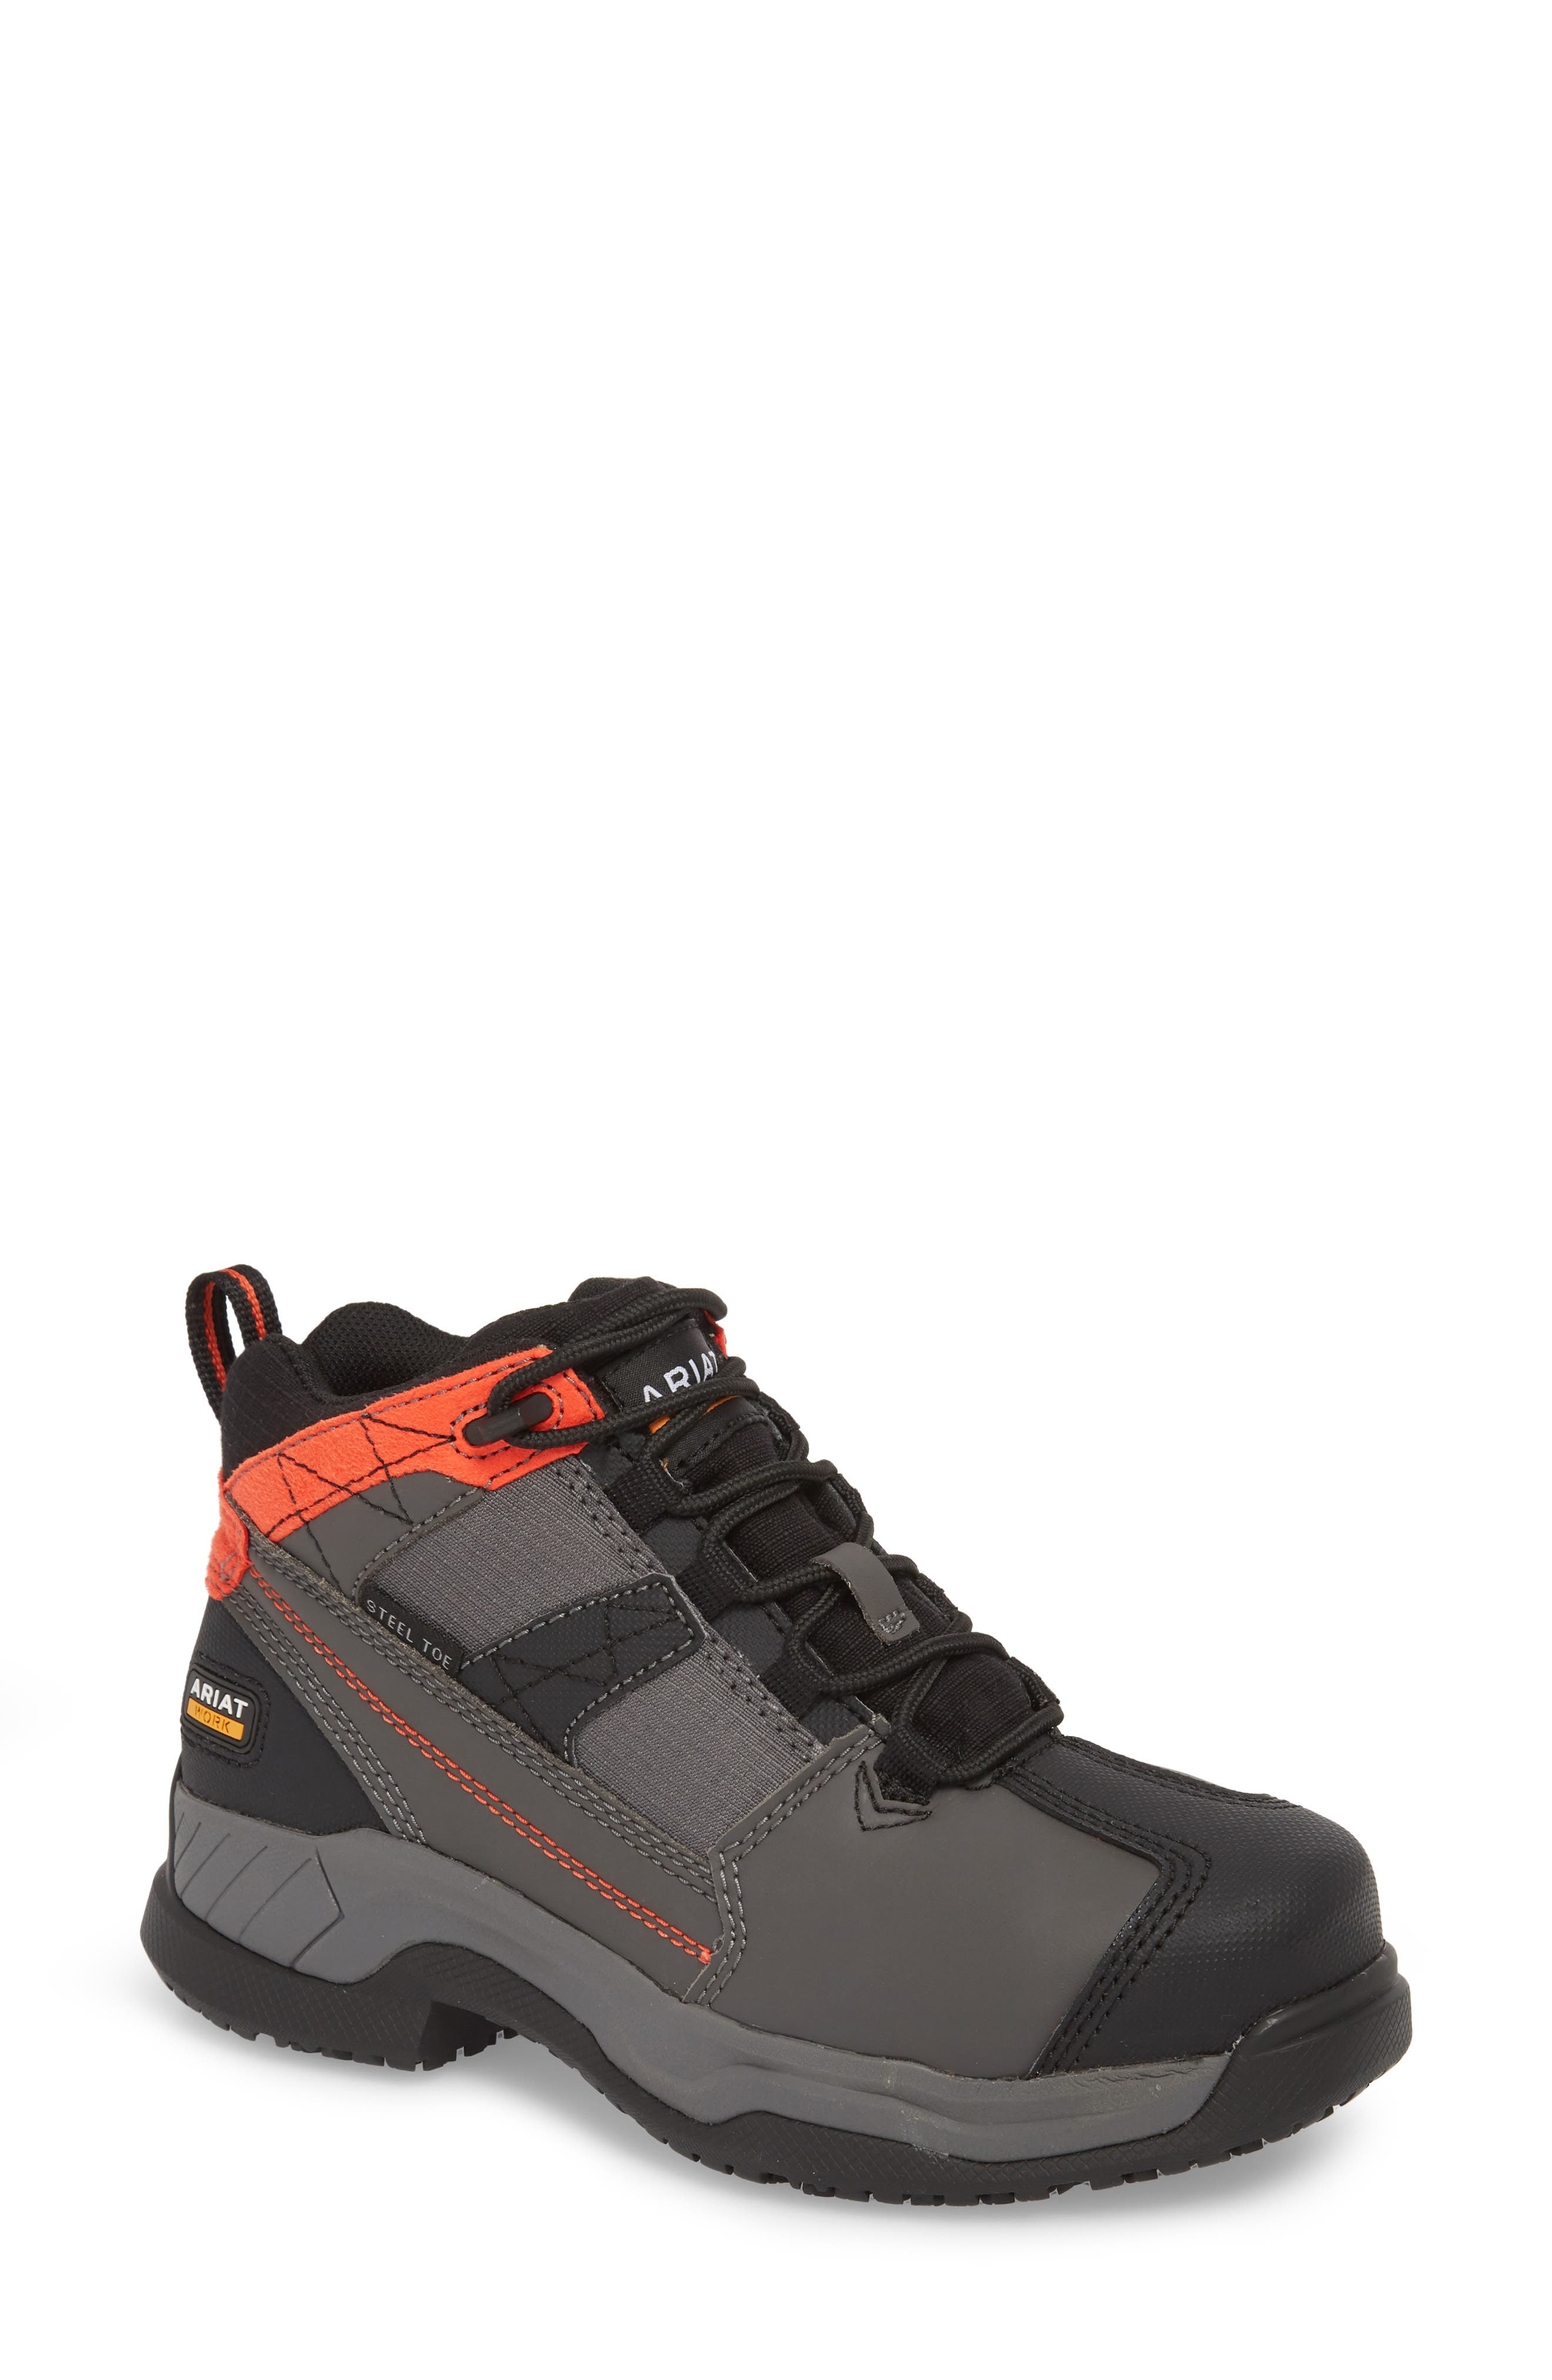 Contender Steel-Toe Work Boot,                         Main,                         color, Graphite